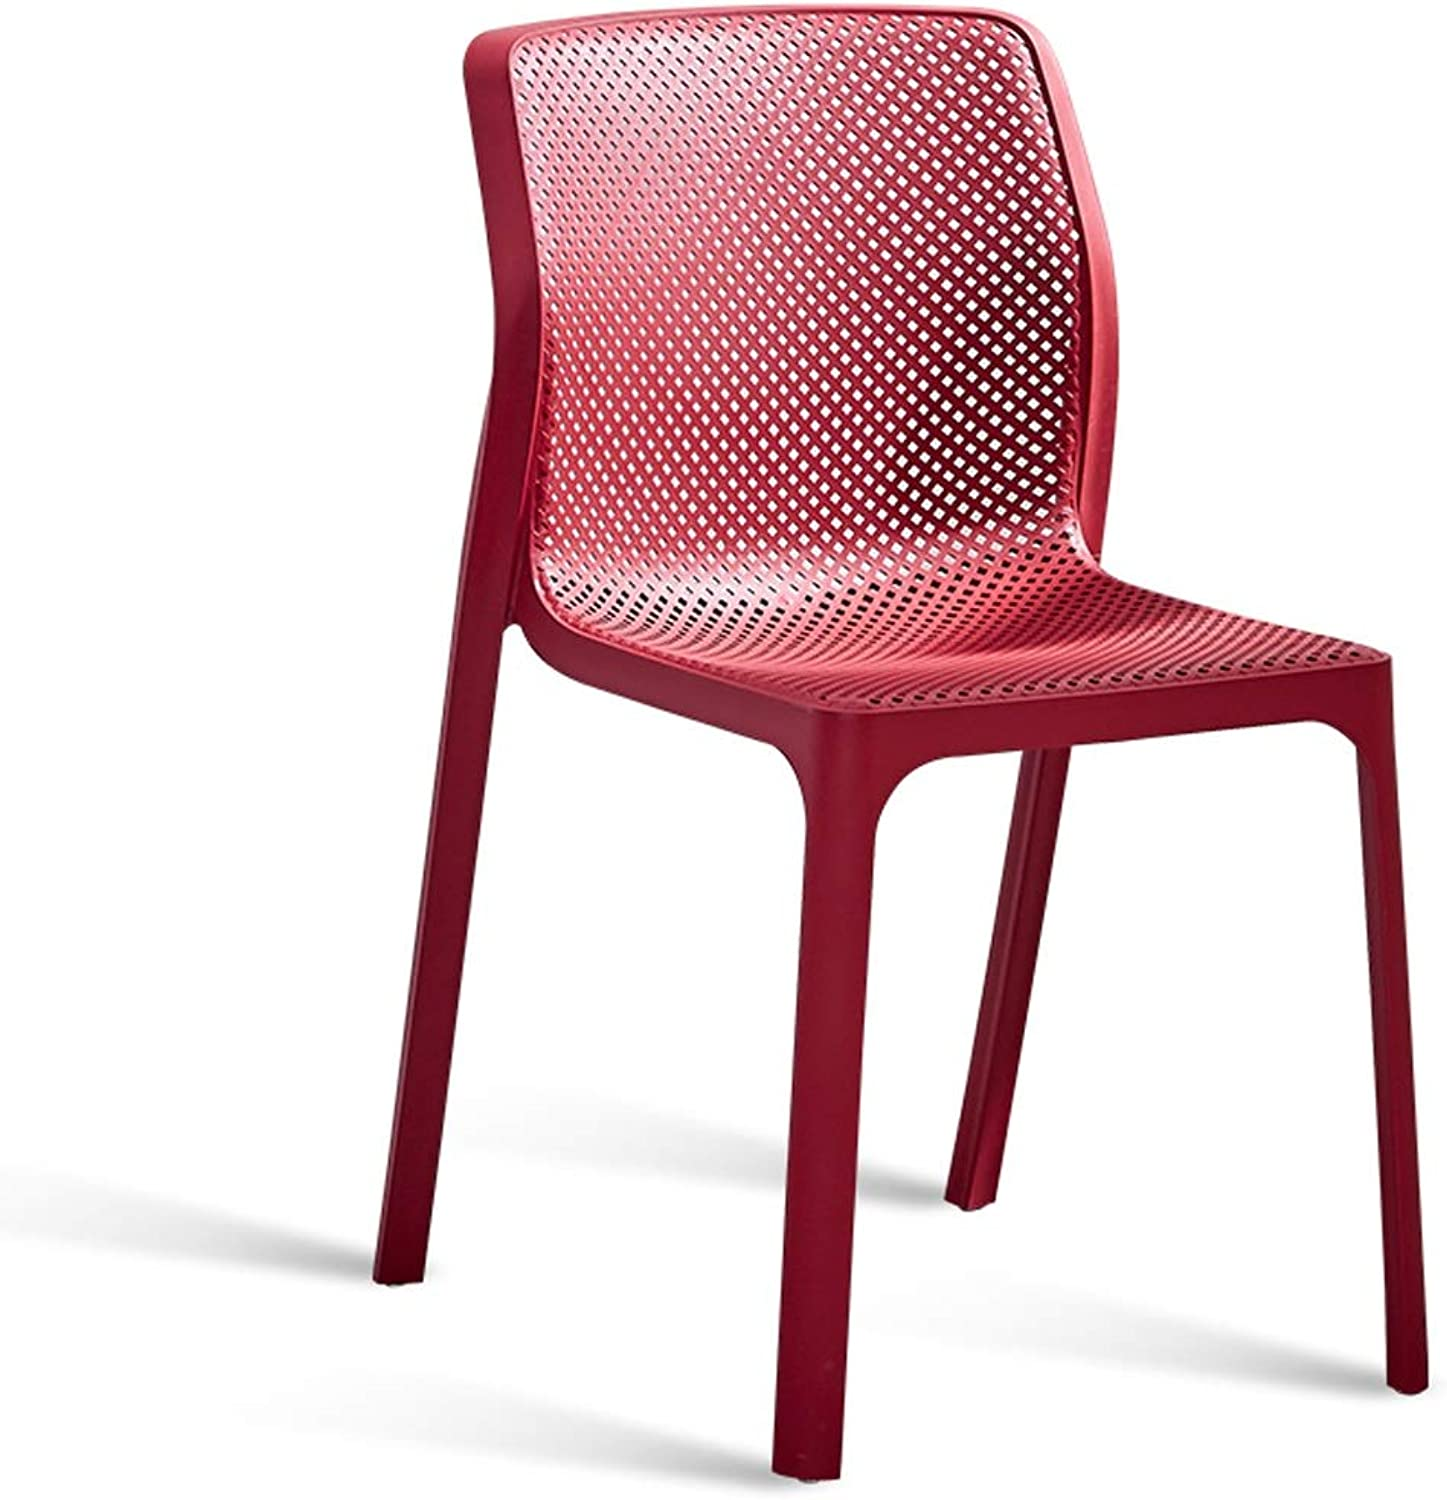 LRW Modern Red Creative Hollowing Leisure Chair Nordic Dining Chair Home Backrest Stool